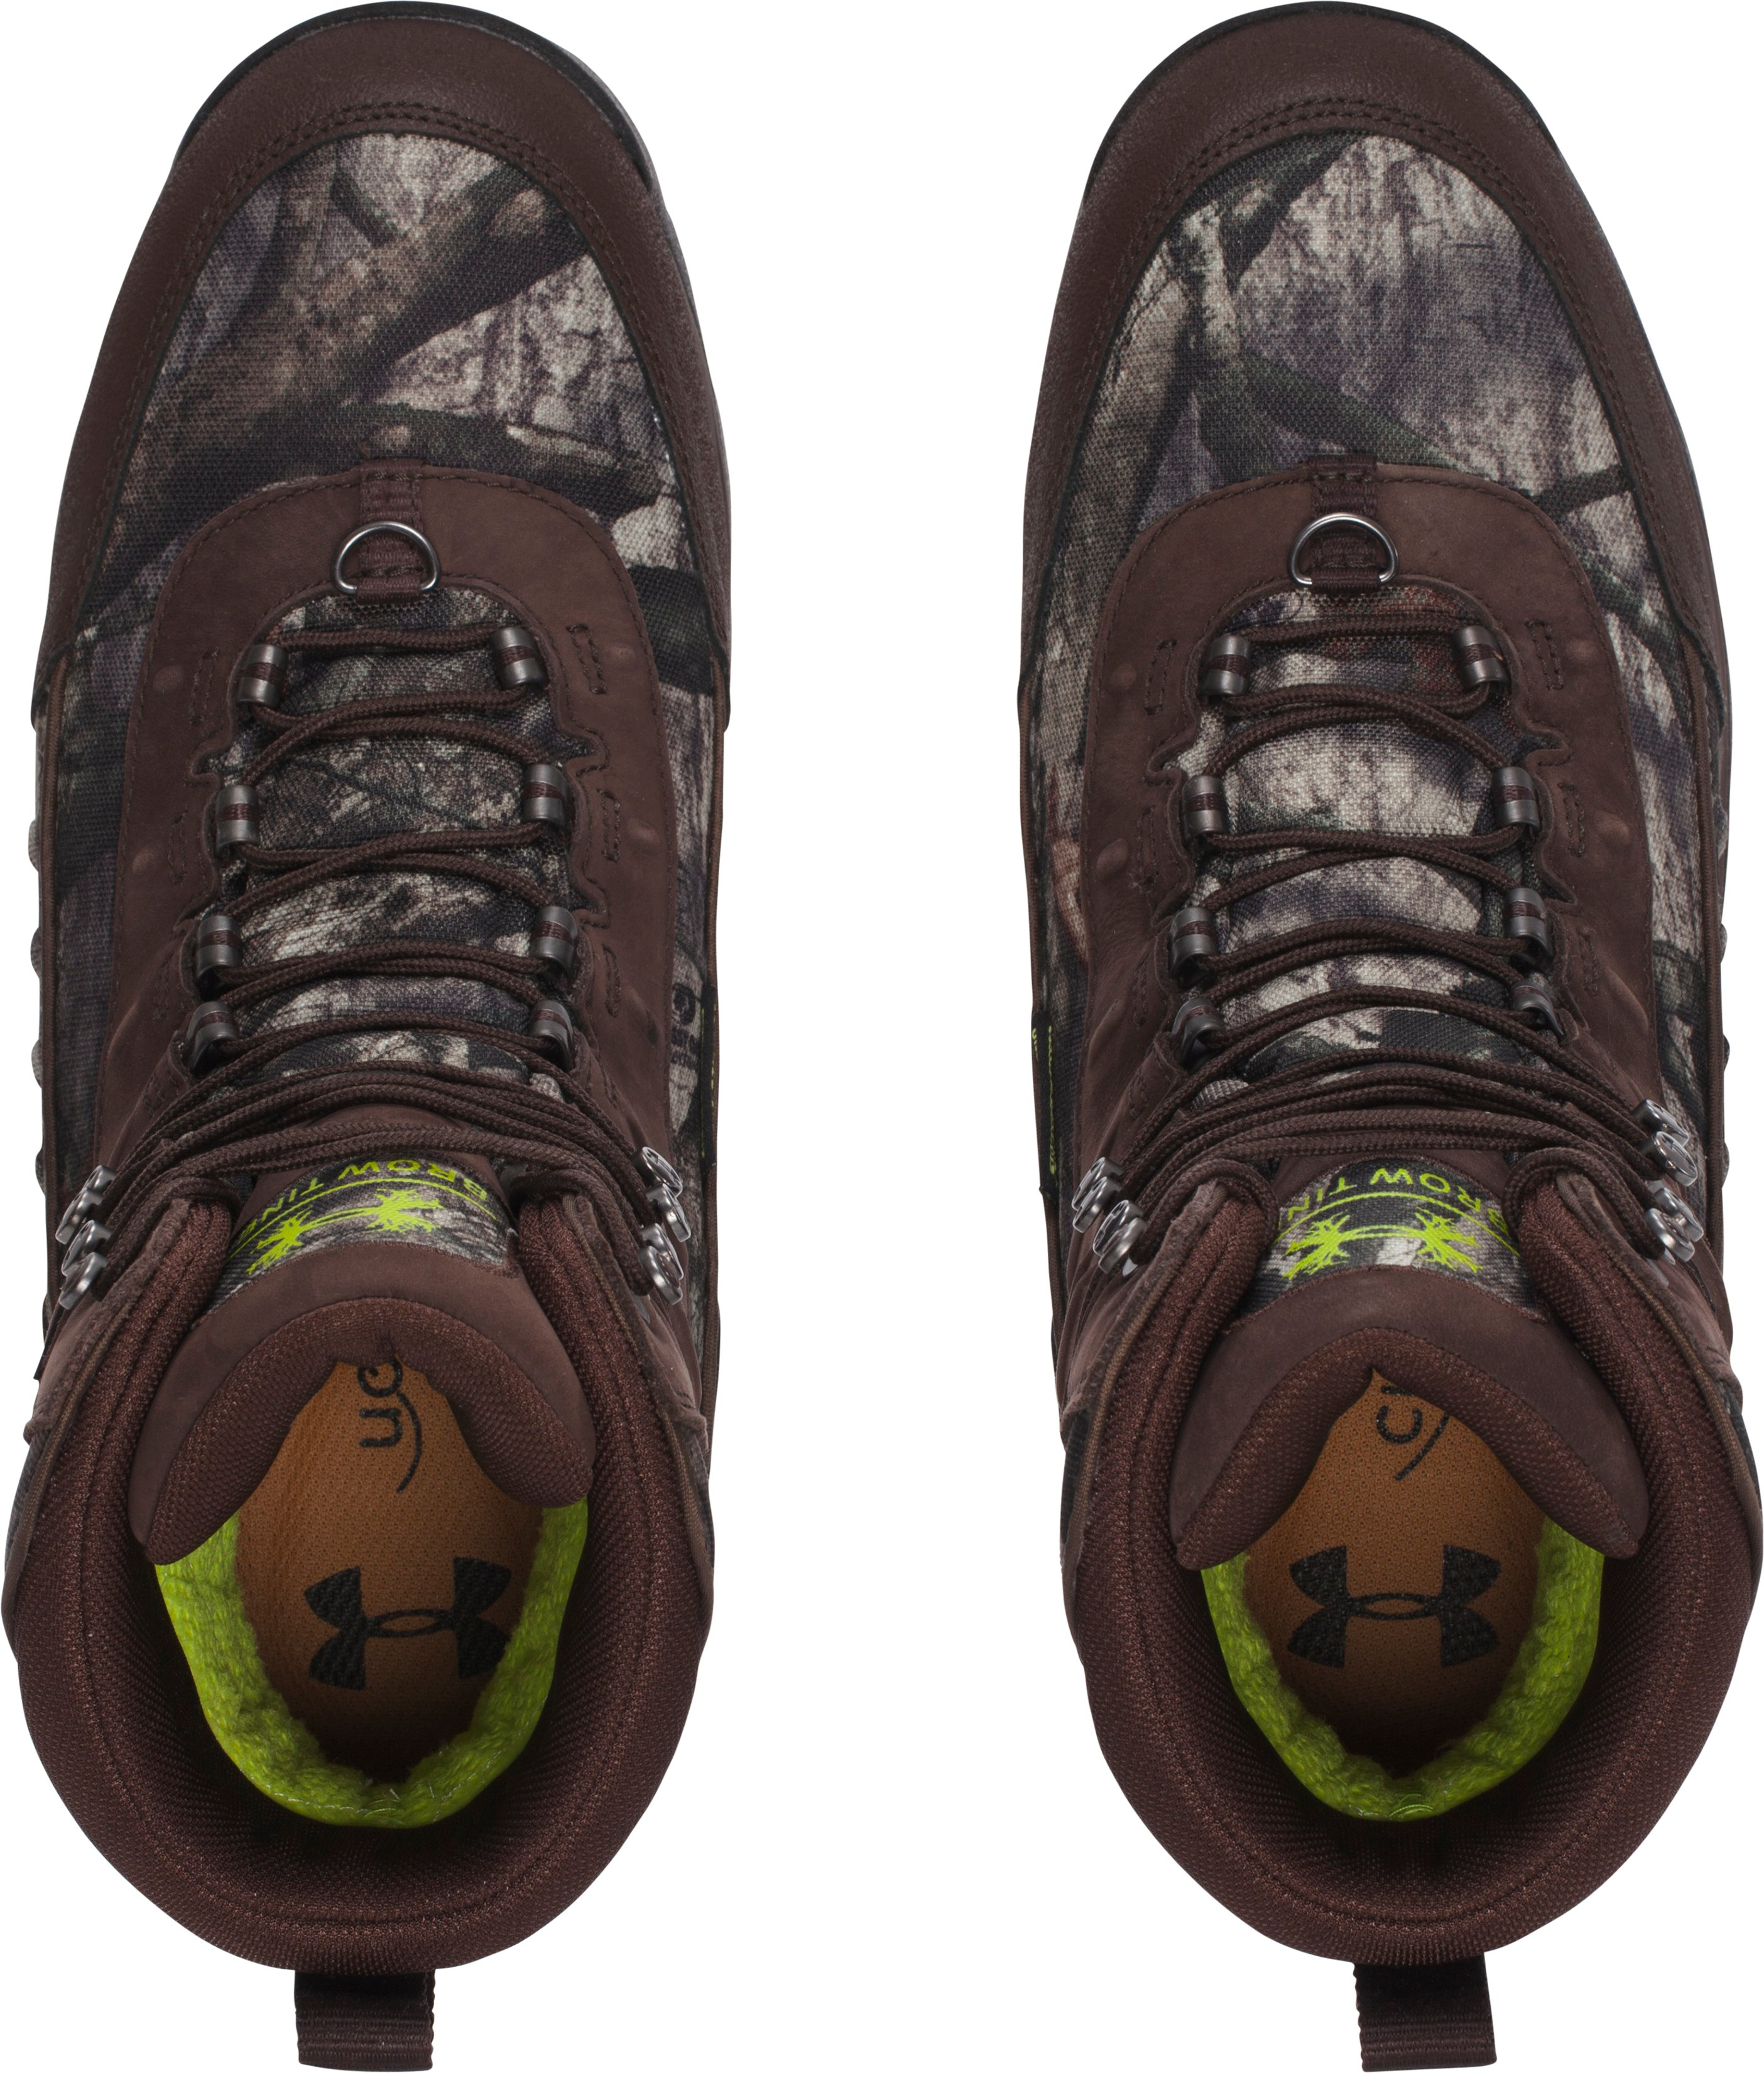 Men's UA Brow Tine Hunting Boots – 800g, Mossy Oak Treestand